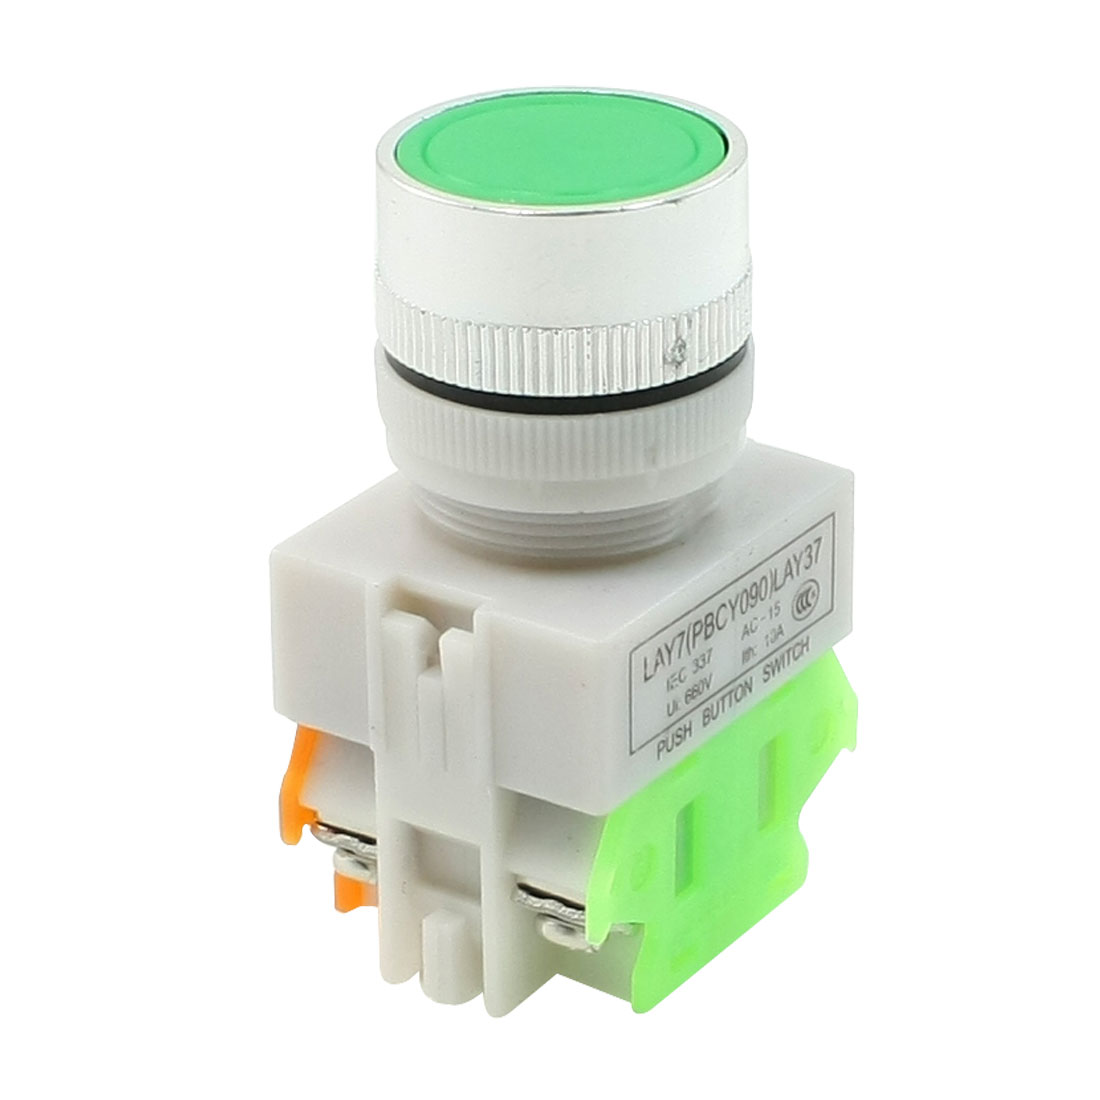 AC 660V 10A Green Sign Momentary Pushbutton Switch 22mm Dia DPST